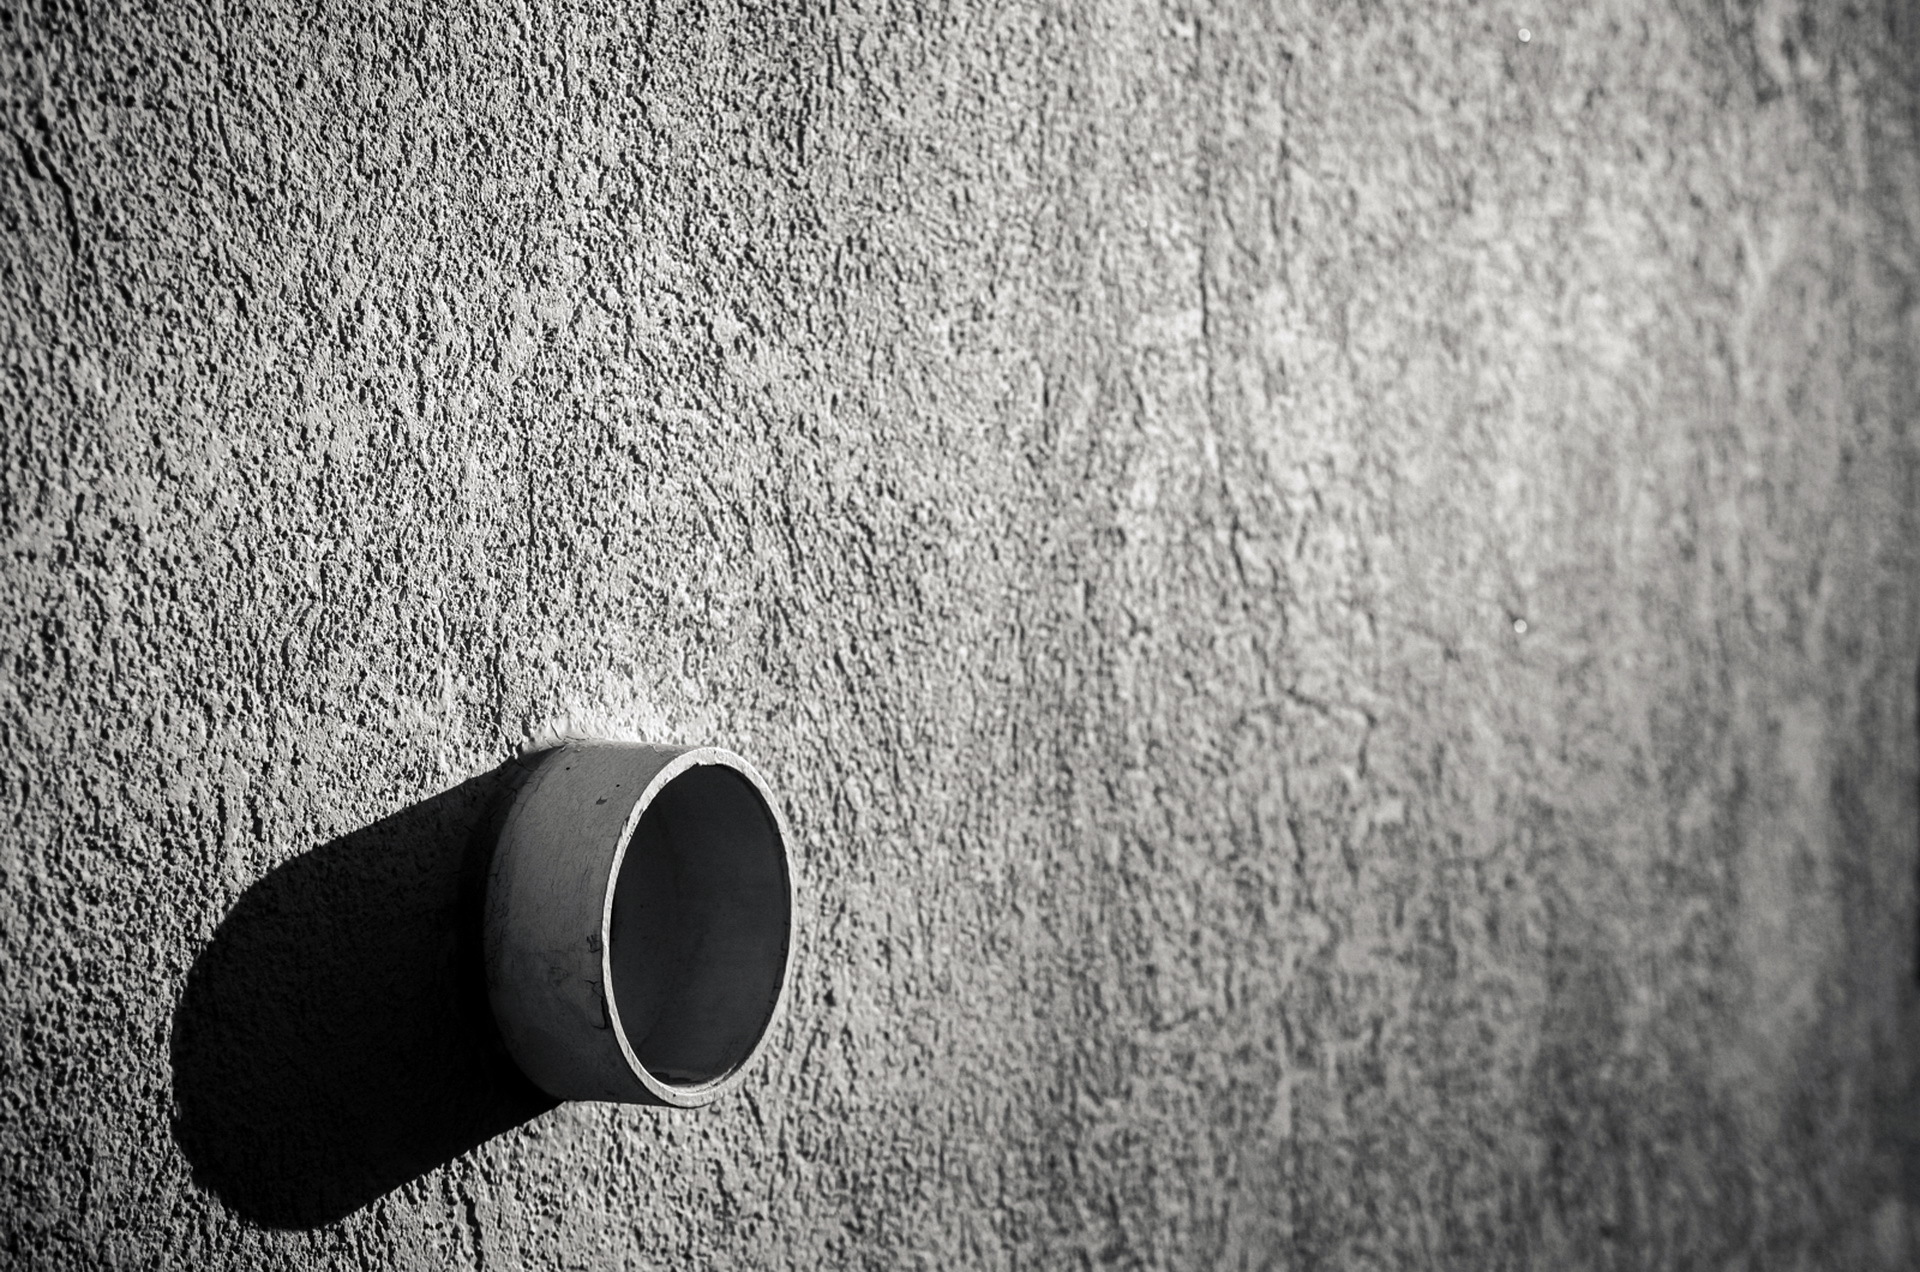 Wallpaper wall, pipe, background wallpapers minimalism - download